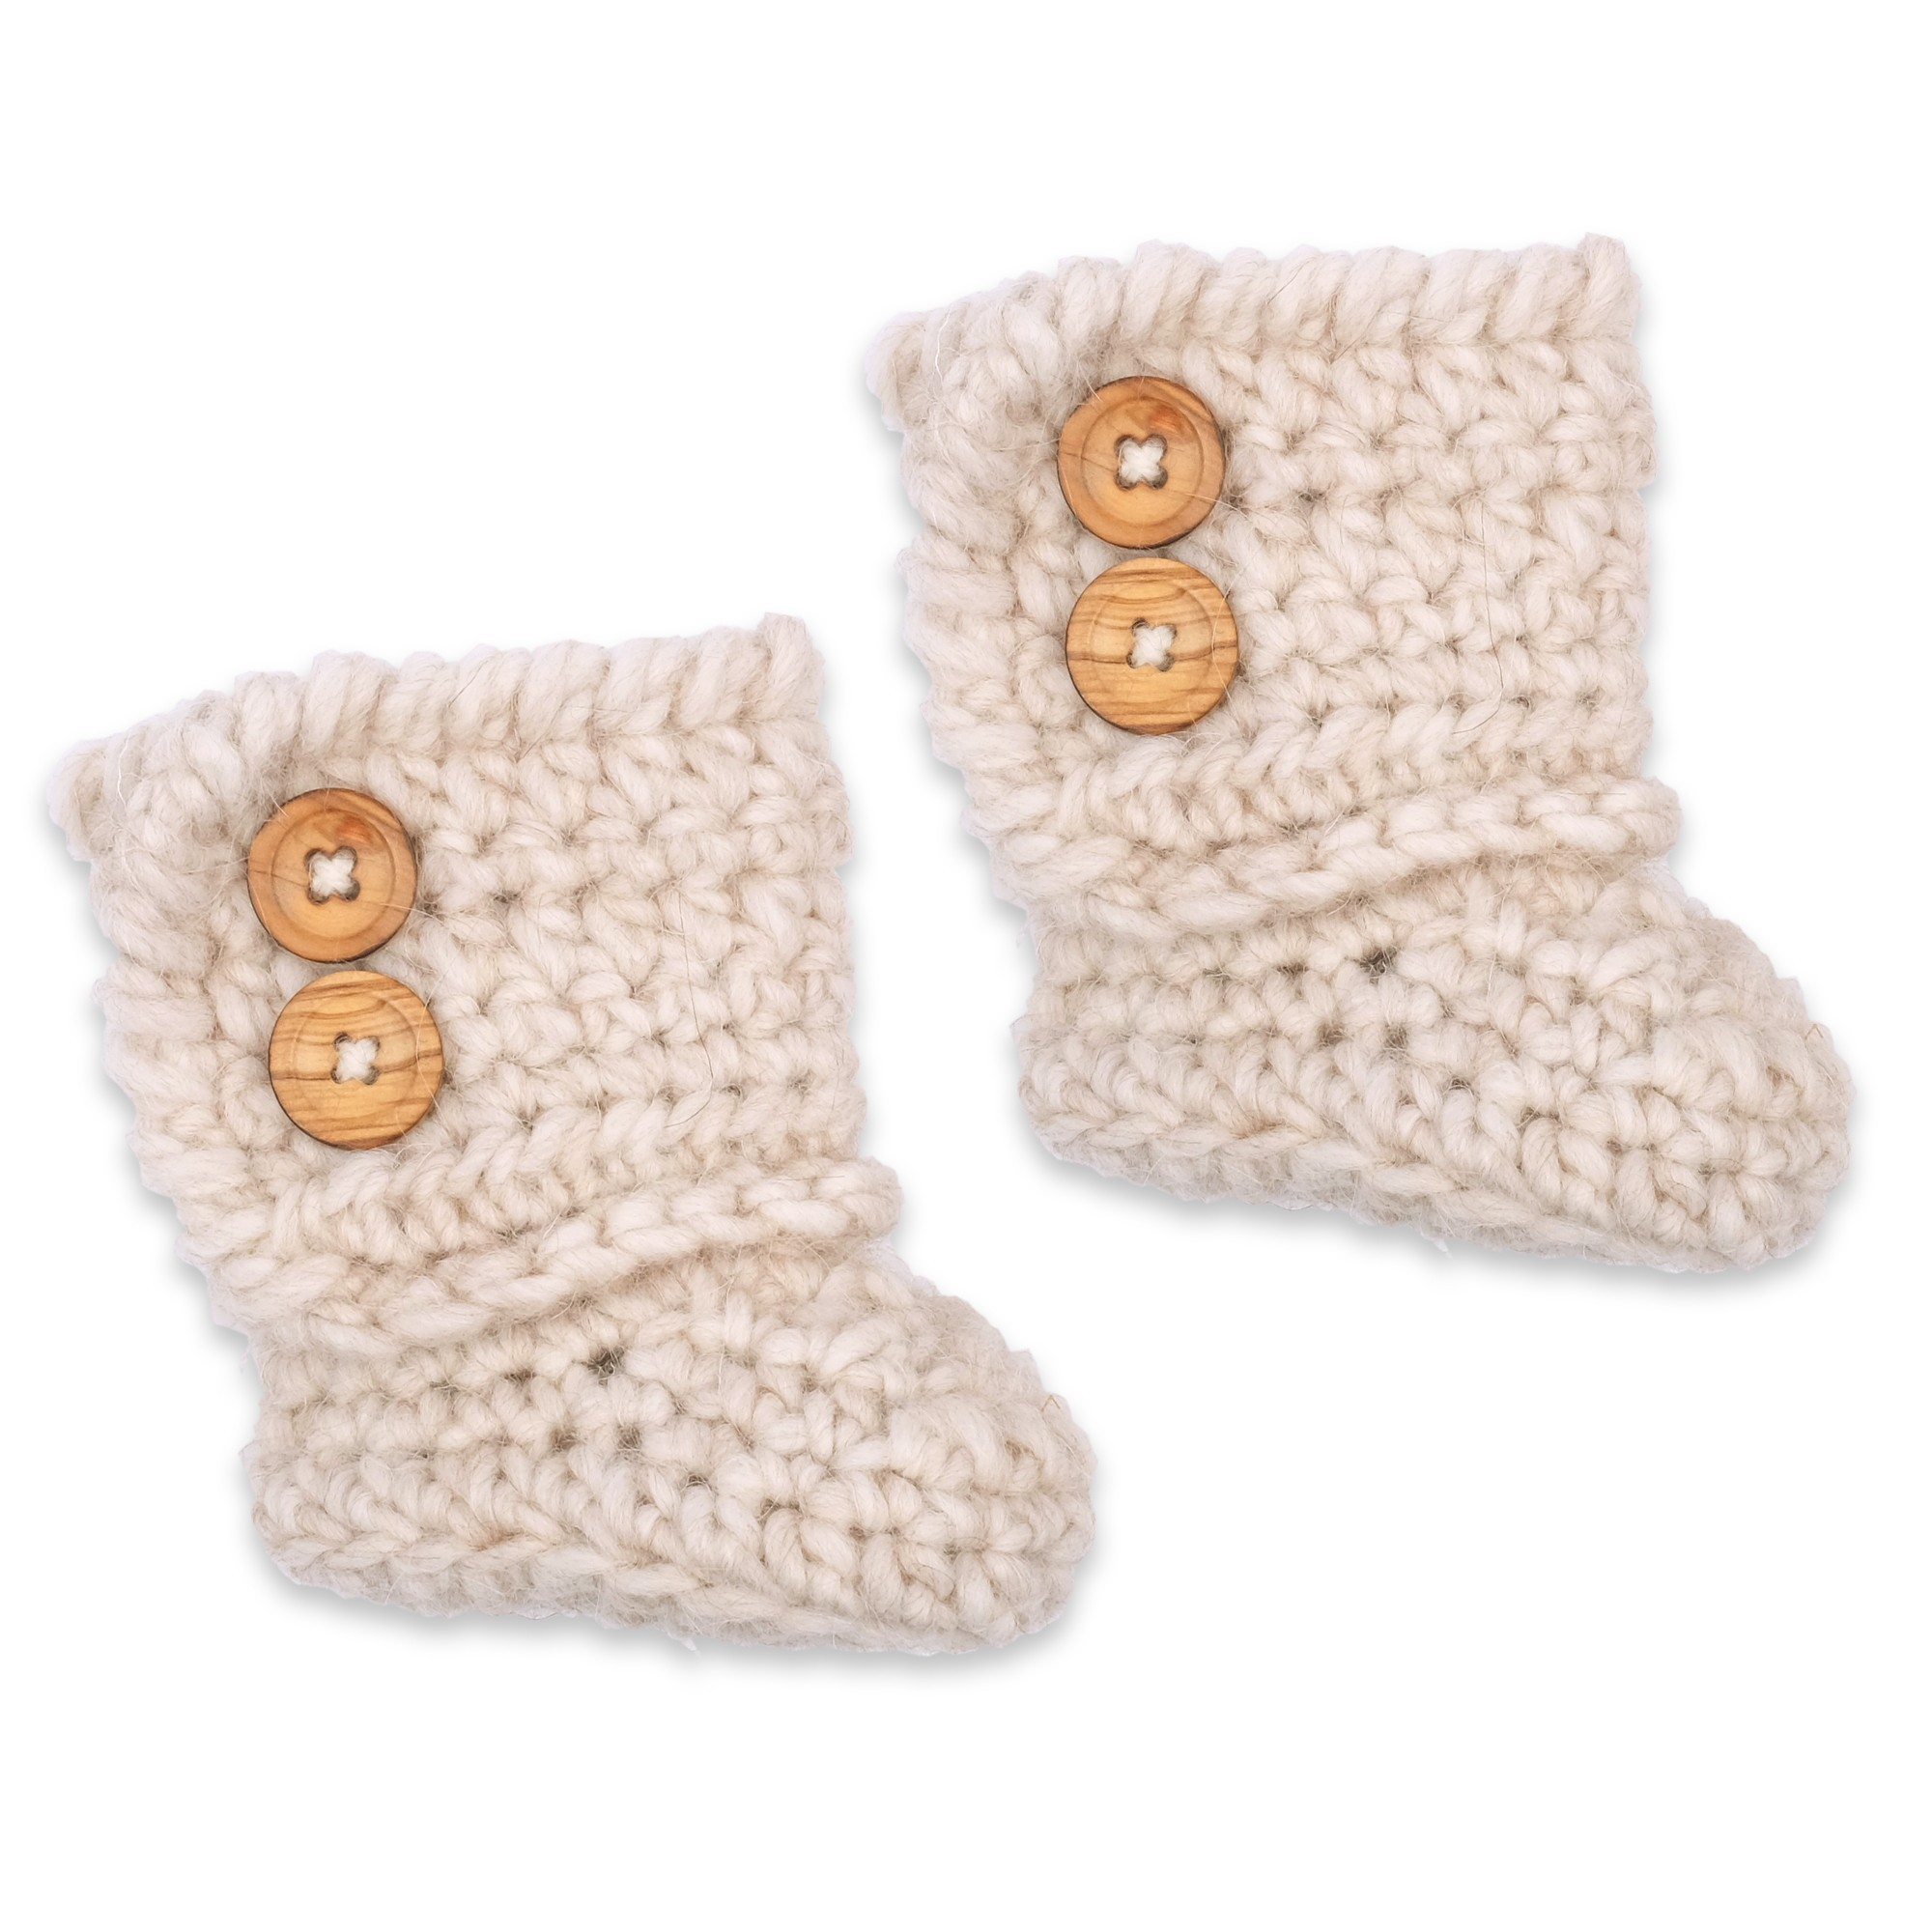 Célestine boots for baby - beige color